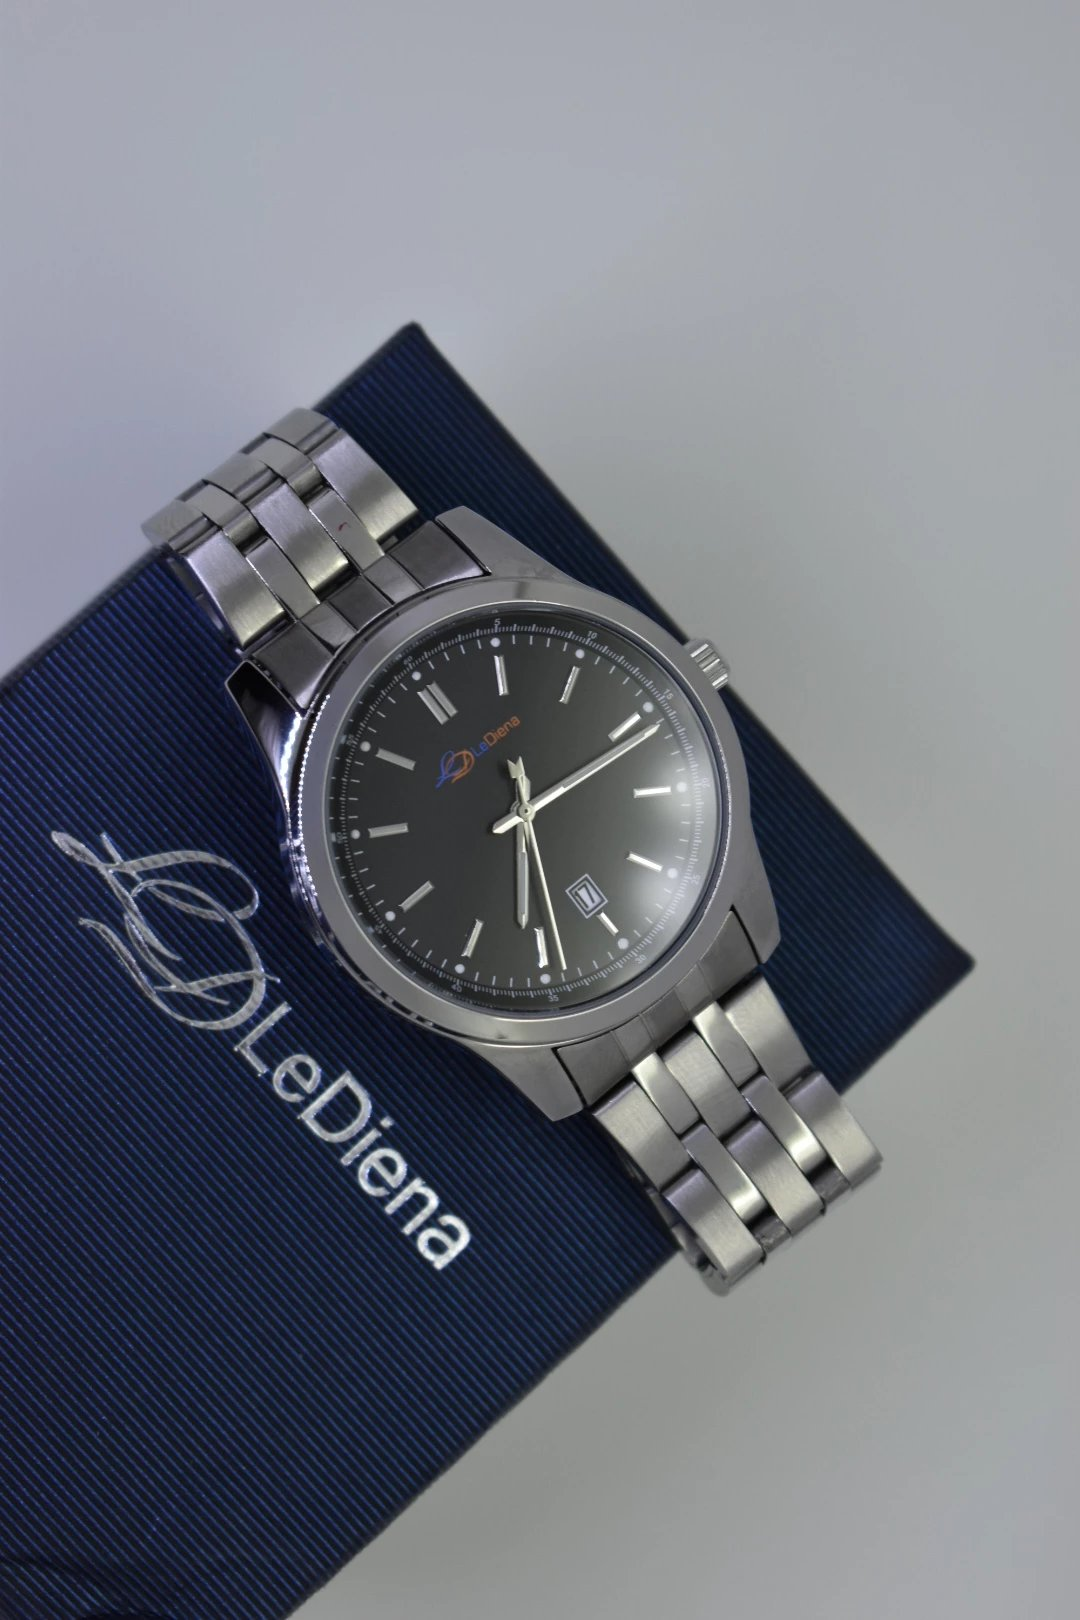 LeDiena, watches, men's watches, females watches, watch bands, watch bezel, diamonds, straps, watches, watch, accessories, mens accessories